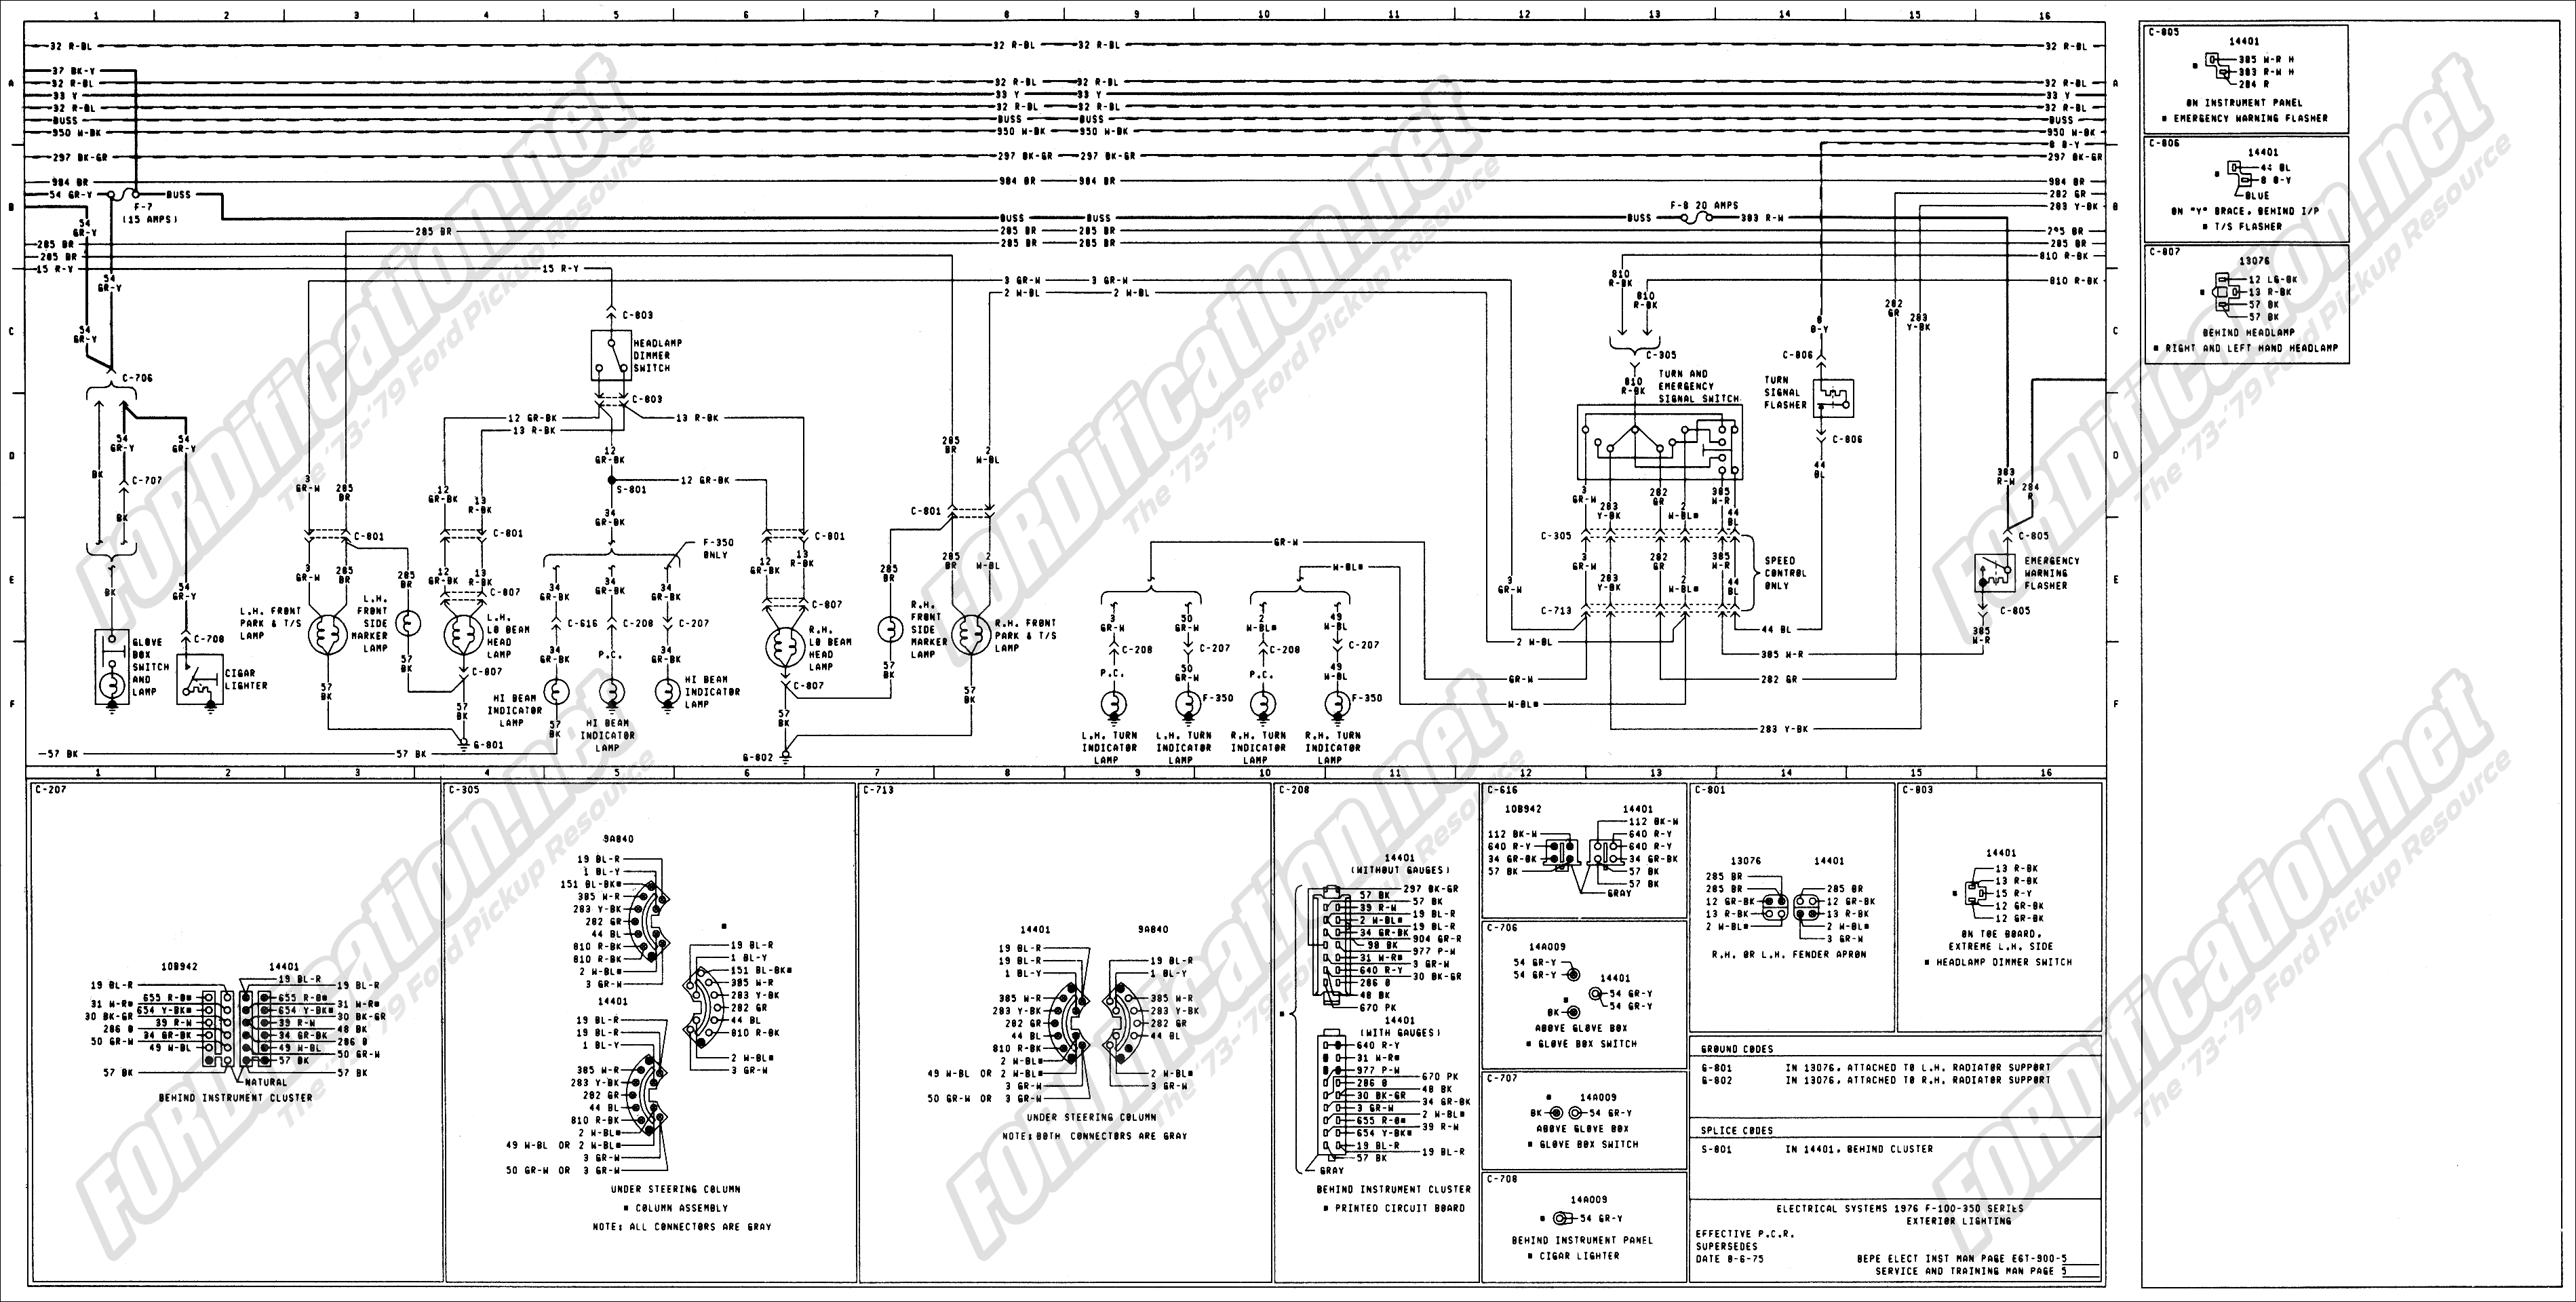 wiring_76master_5of9 1983 ford f100 wiring diagram wiring diagram simonand 1979 ford f100 fuse box diagram at gsmportal.co